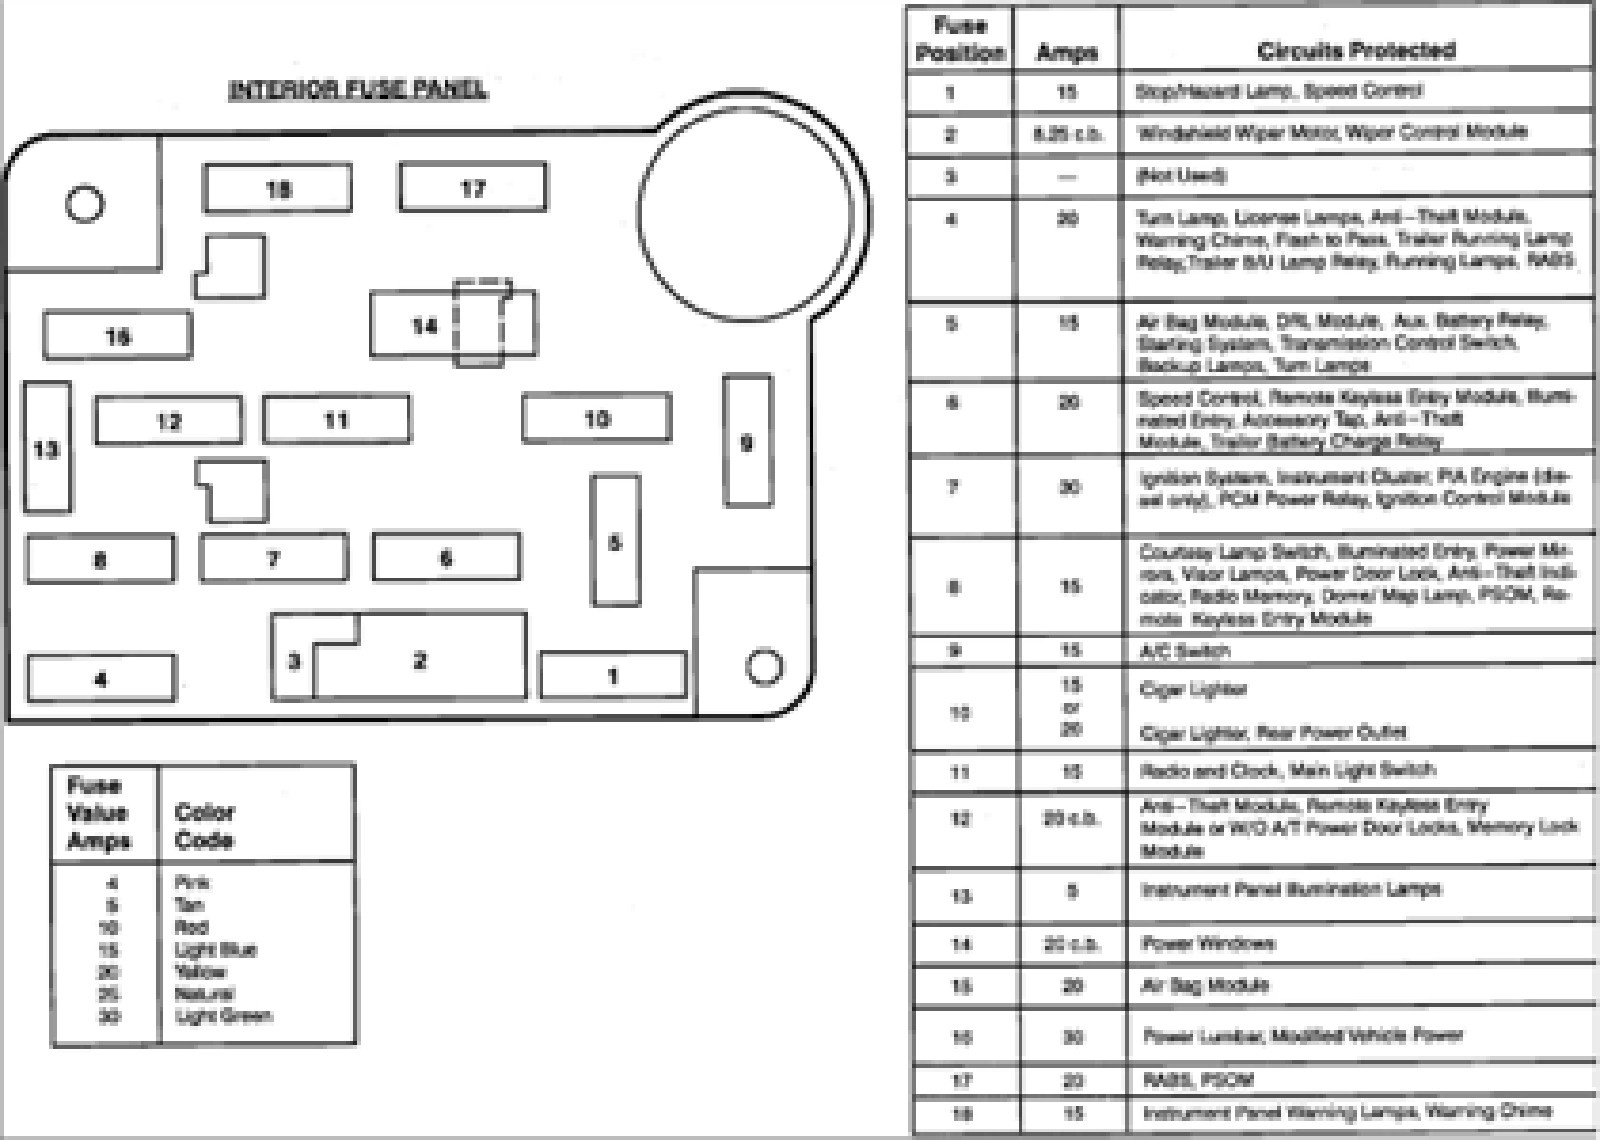 2004 Wrangler Fuse Box Diagram | New Wiring Resources 2019 on